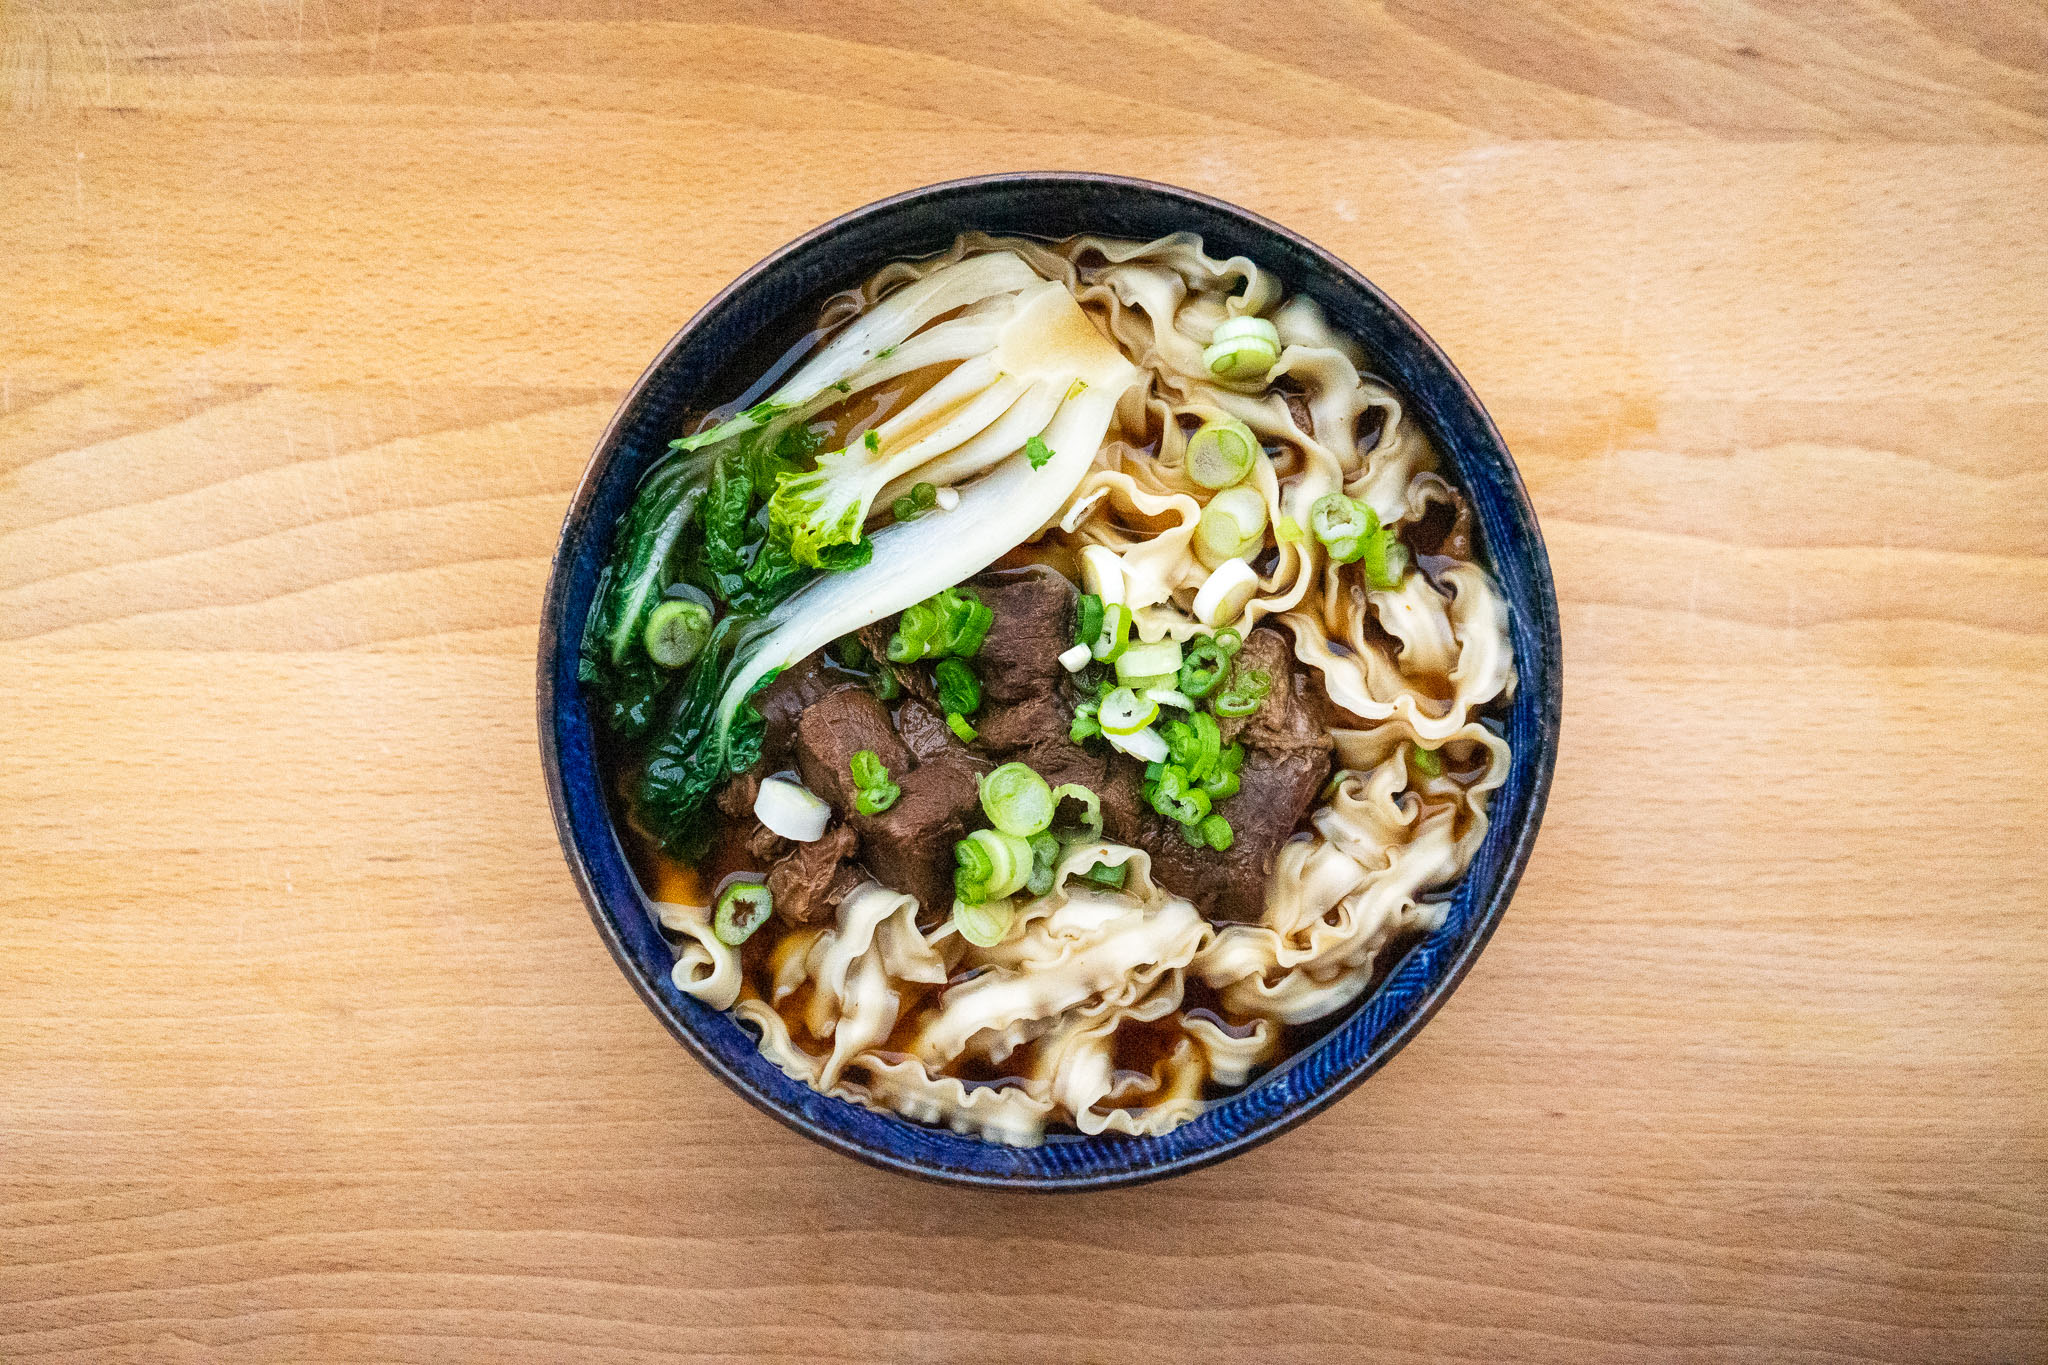 Overhead view of a bowl of beef noodle soup, garnished with bok choy and chopped scallions, on a wood table.